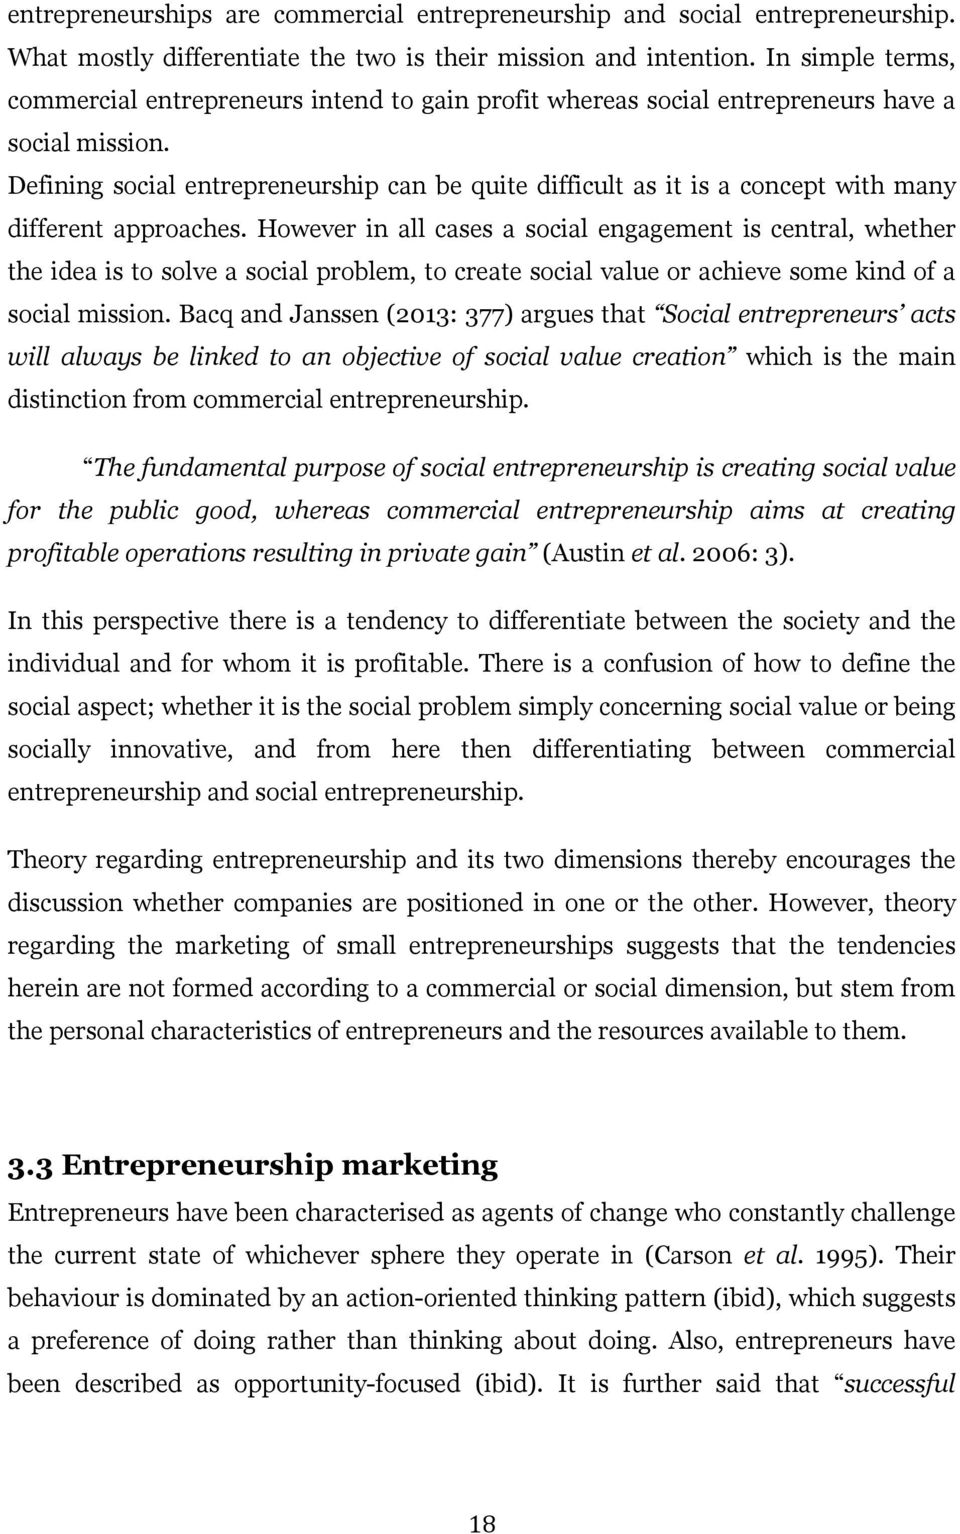 Defining social entrepreneurship can be quite difficult as it is a concept with many different approaches.